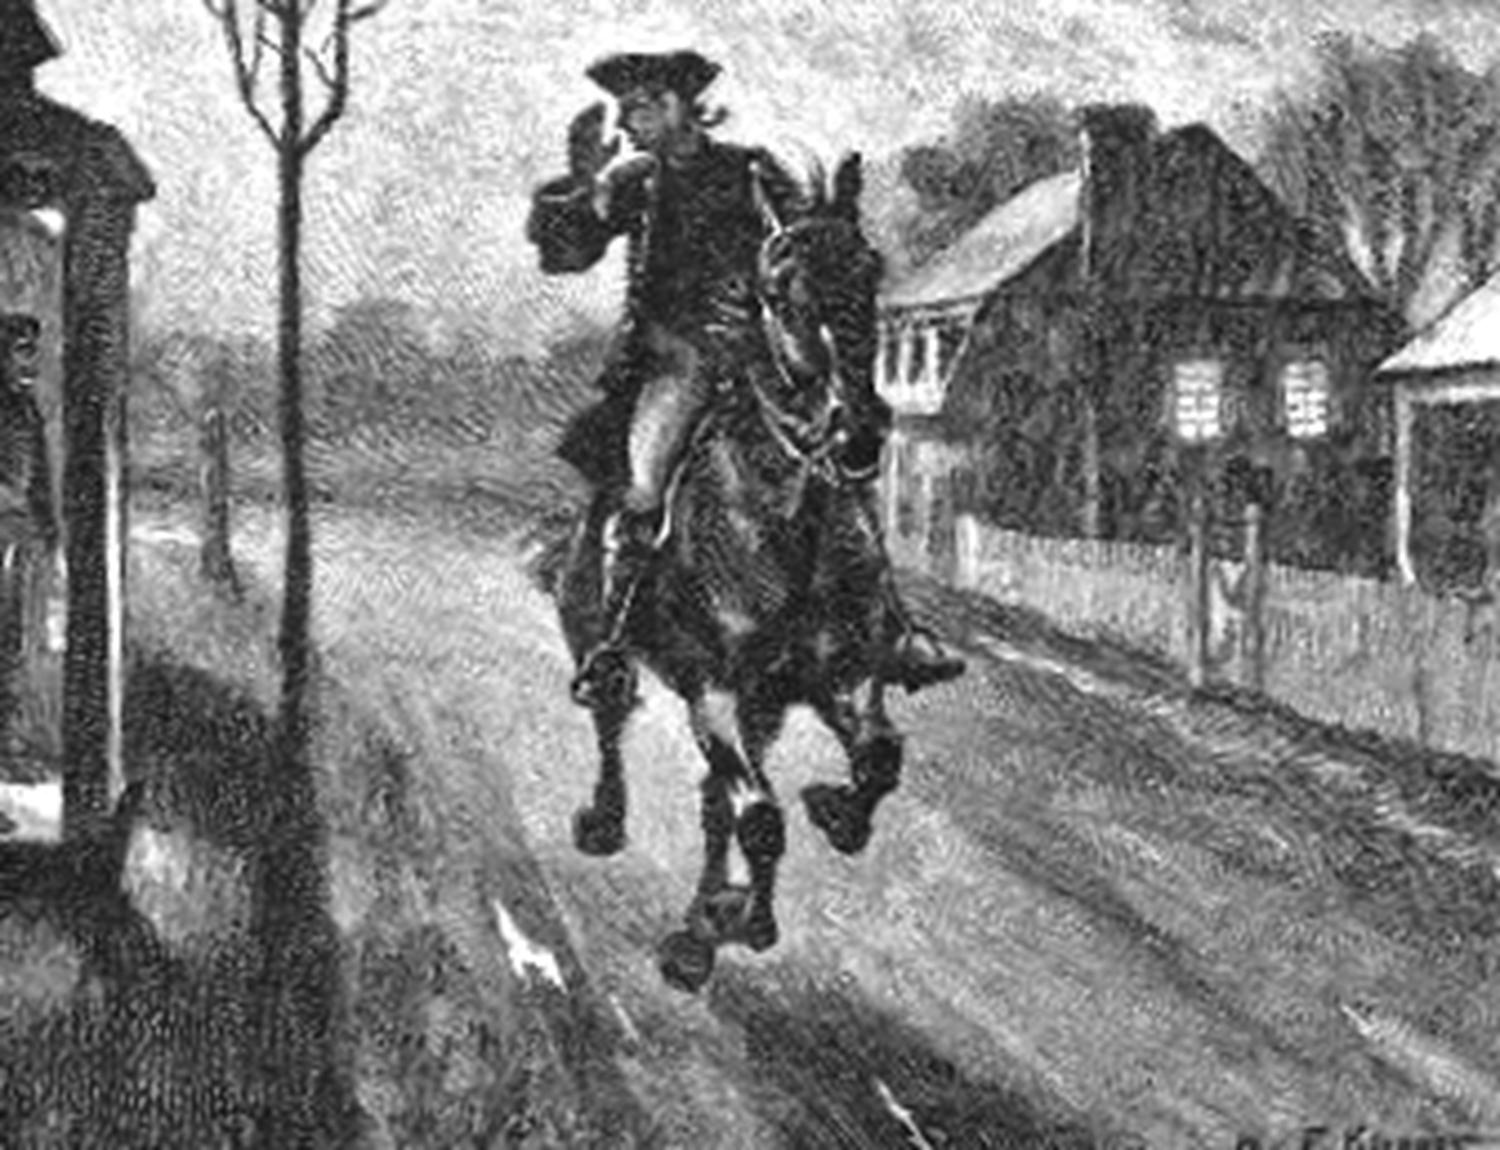 a brief life story of paul revere from boston Born on december 22, 1734 in boston revere first became famous for his craftsmanship his work was well known in boston, especially silverware and tea sets.